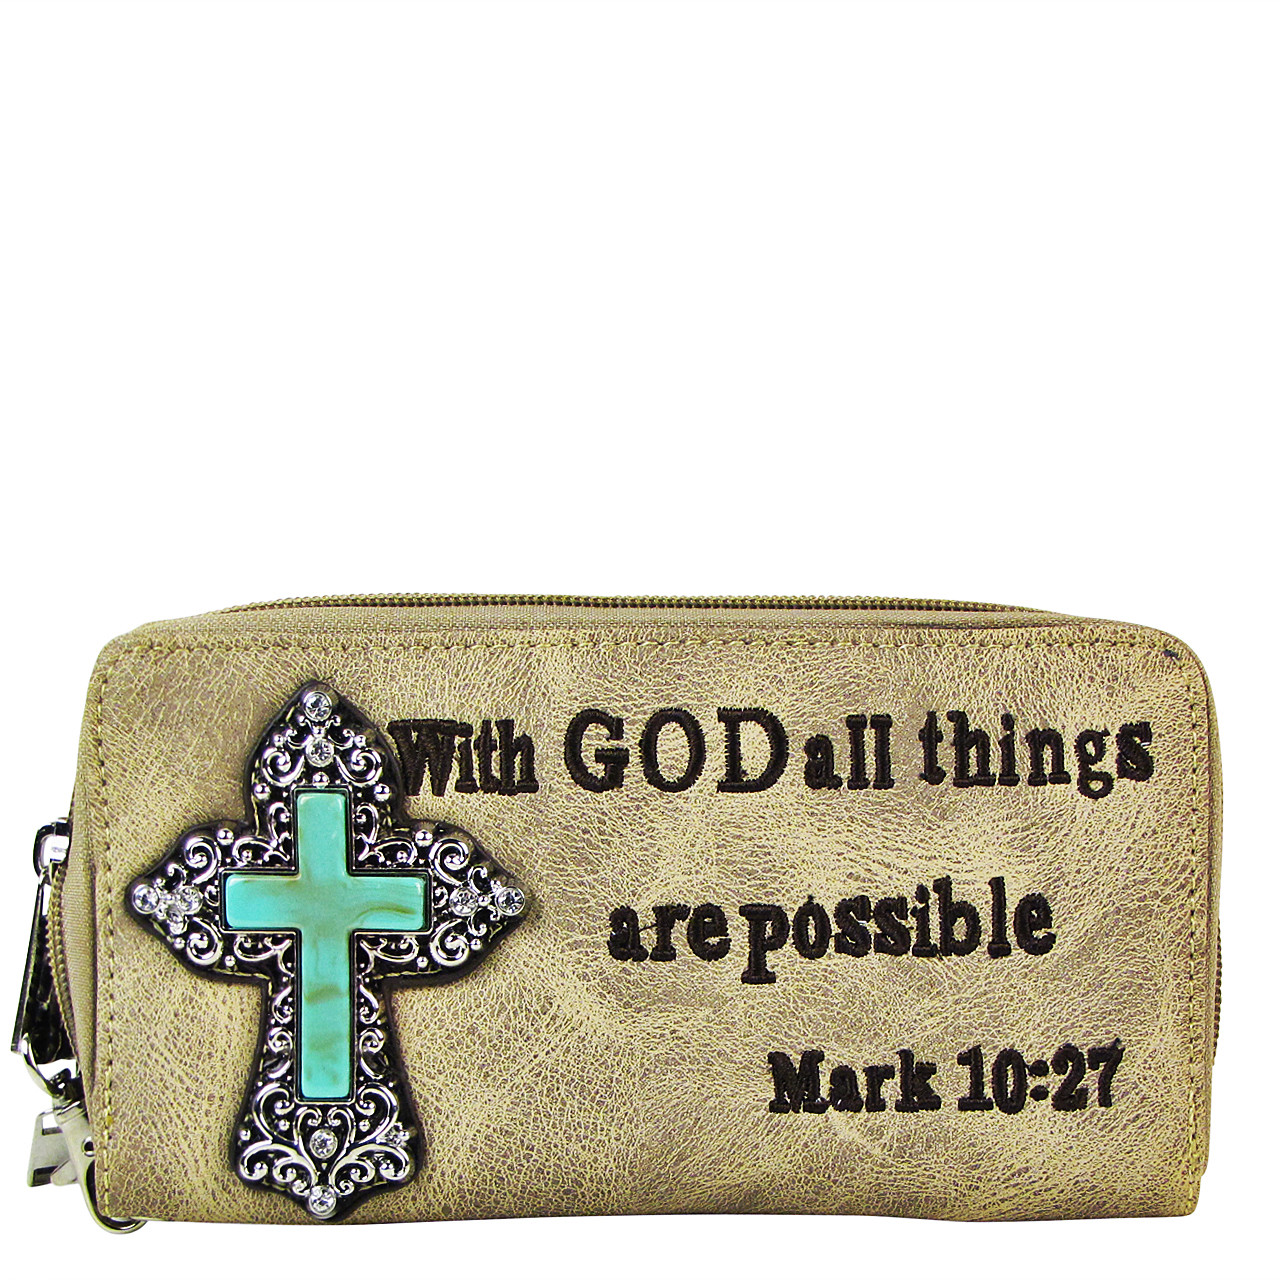 BEIGE BIBLE VERSE METAL BLUE CROSS LOOK ZIPPER WALLET CB3-0408BEI